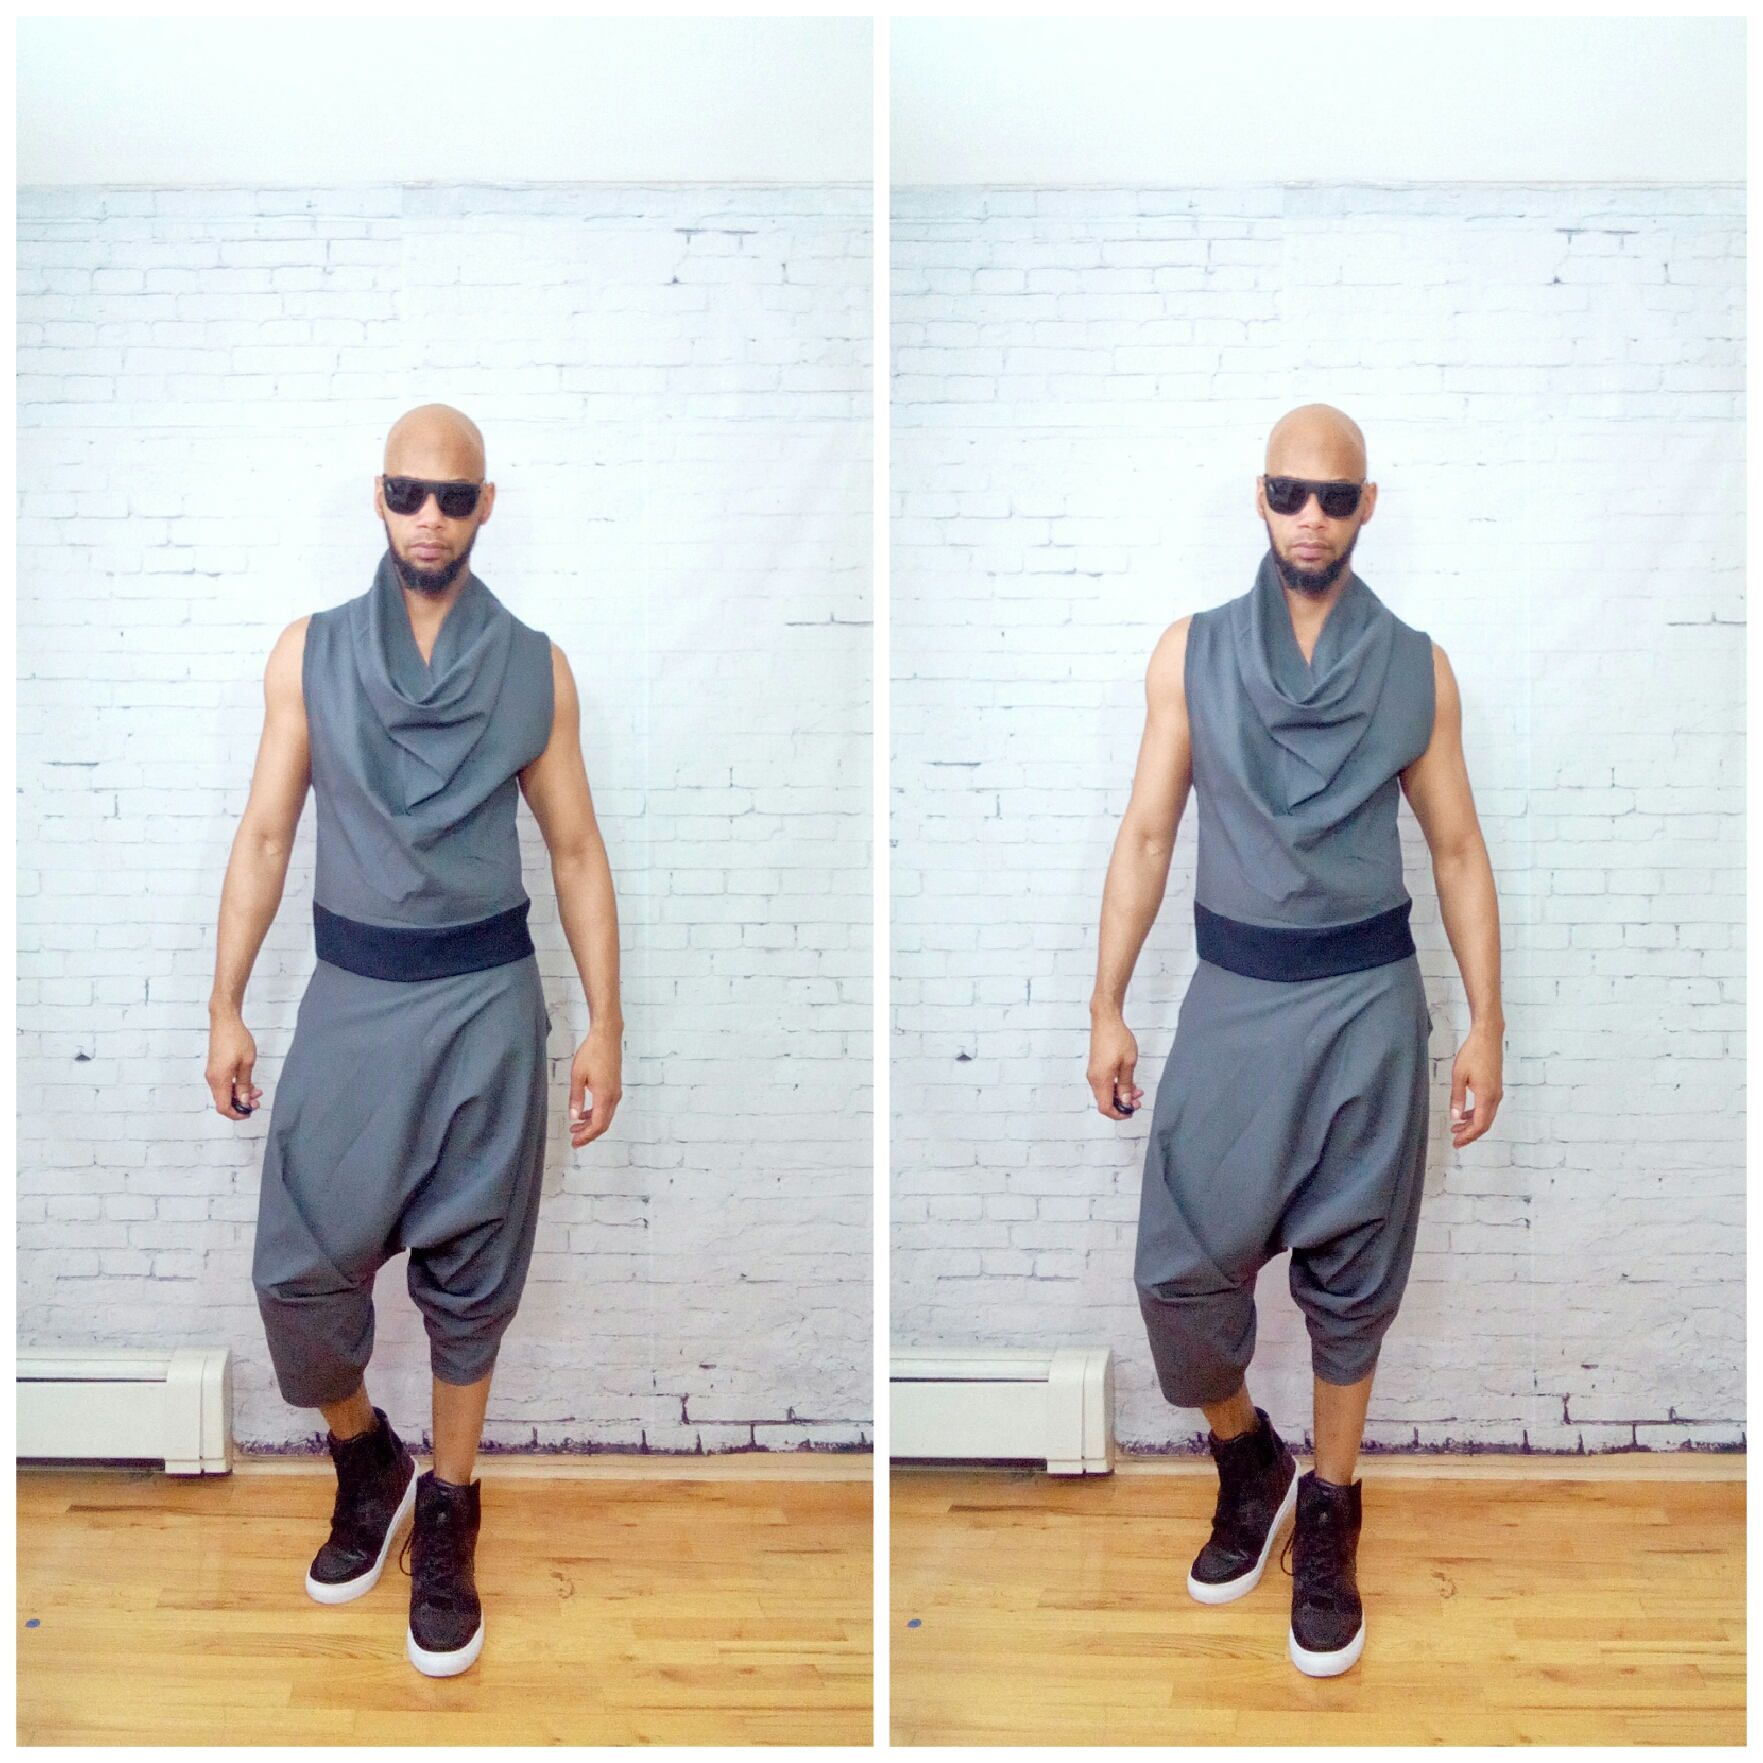 Draped Cowl Neck Harem Pant Woven One piece Sleeveless Back Zip jumpSuit Color - Grey Inspired By- ysl westwood rick owens romper romphim czBX1